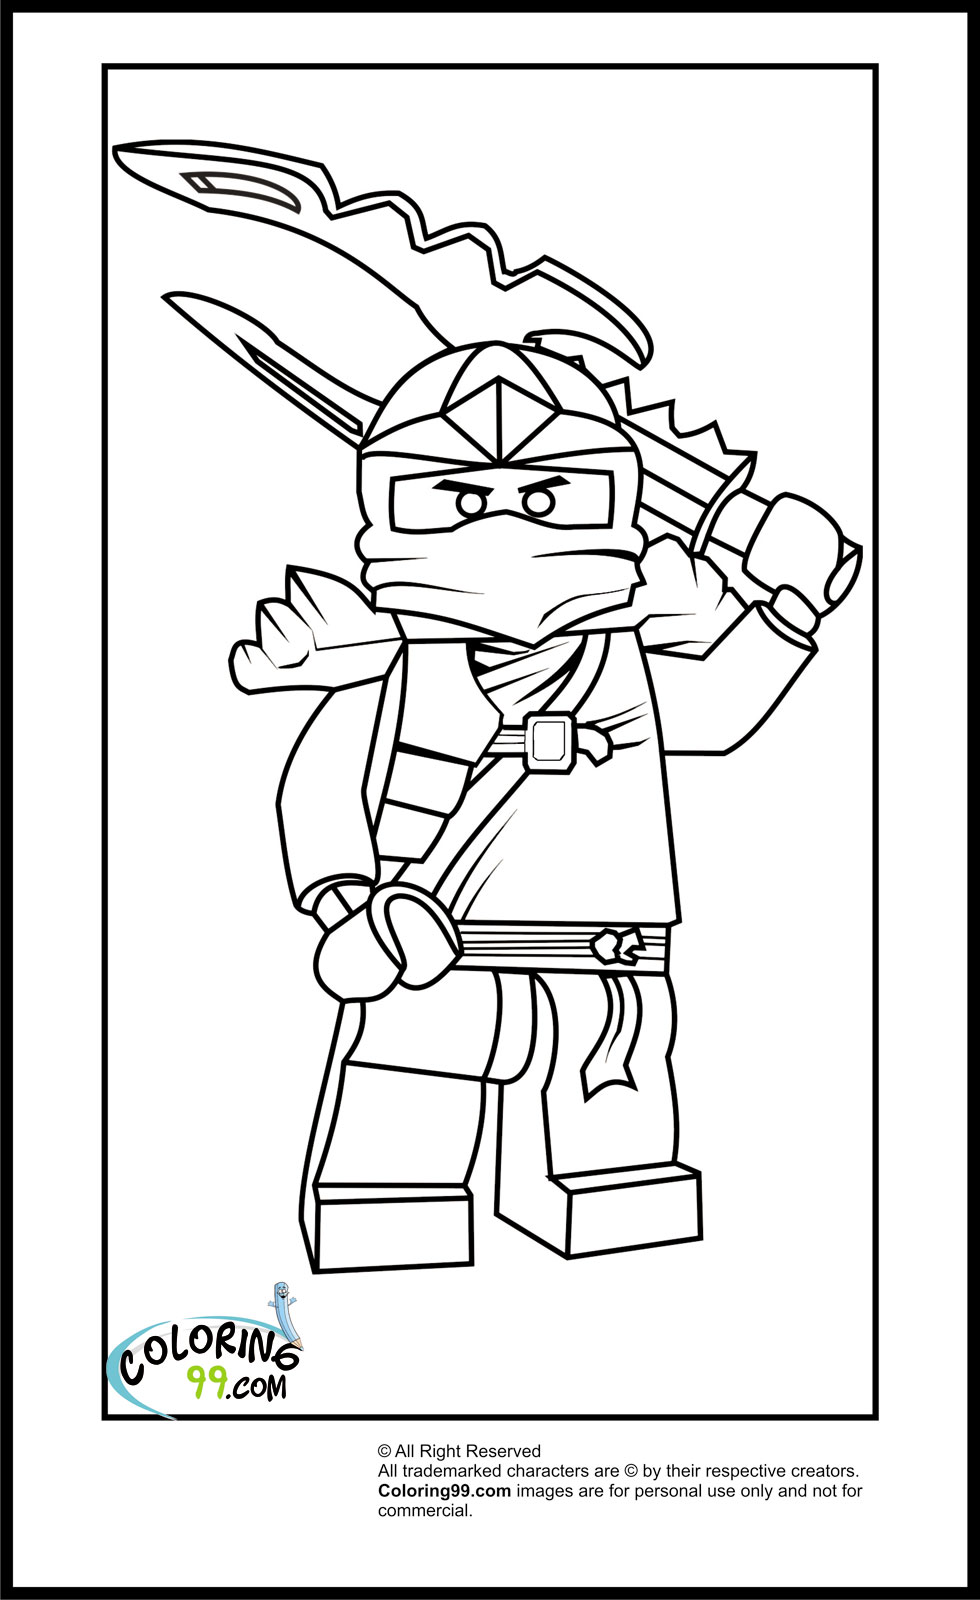 jay ninjago printable coloring pages - photo#17